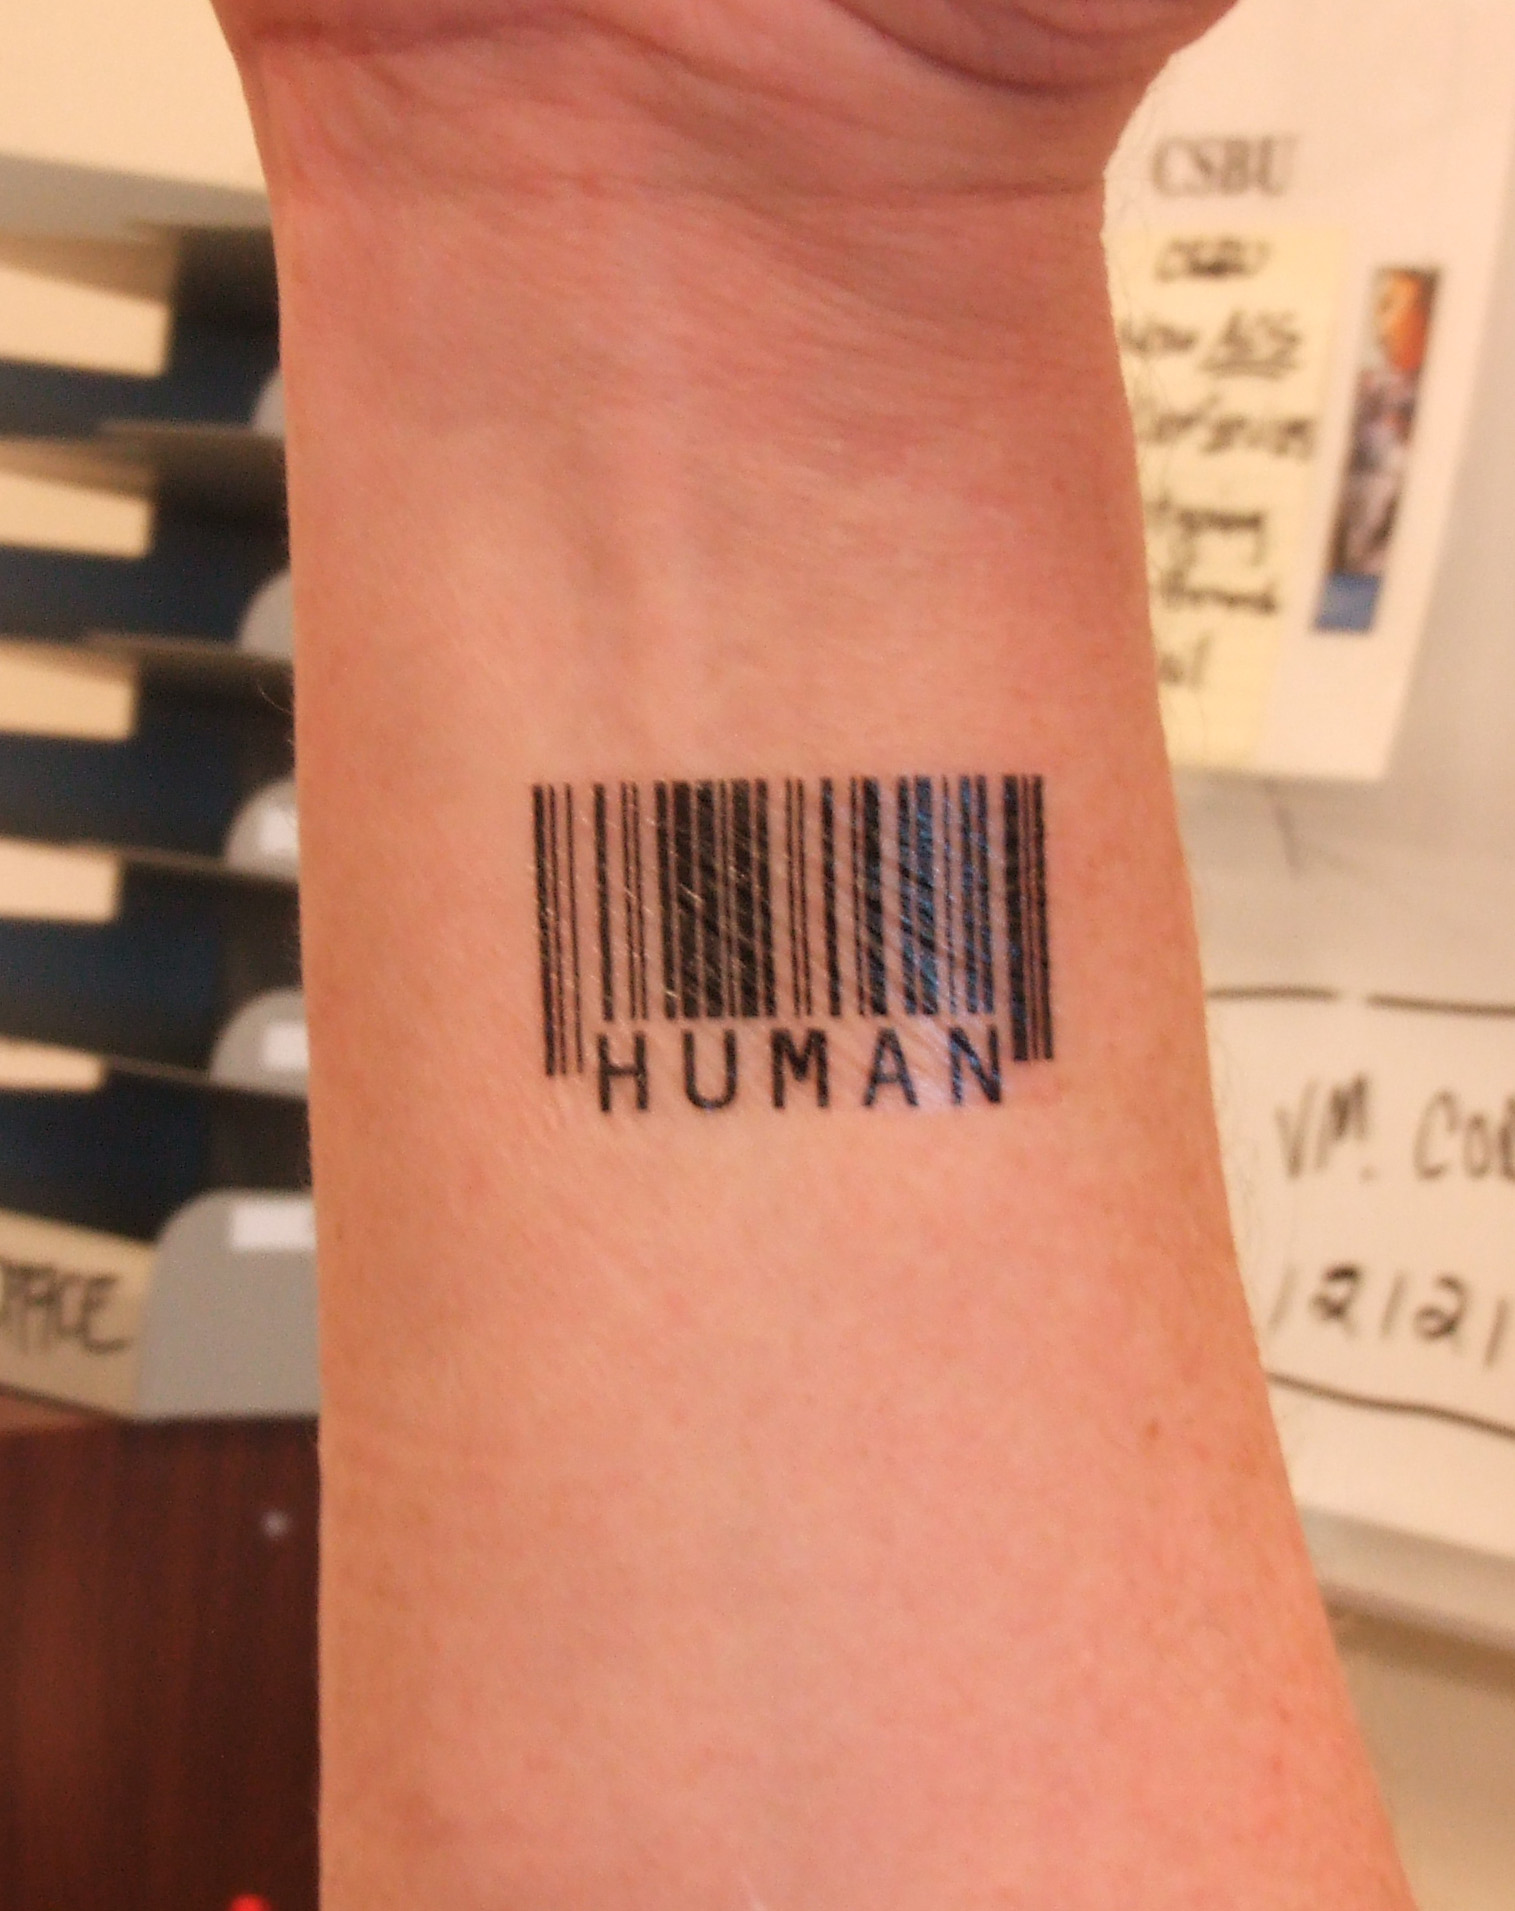 Niall Horan Barcode Tattoo